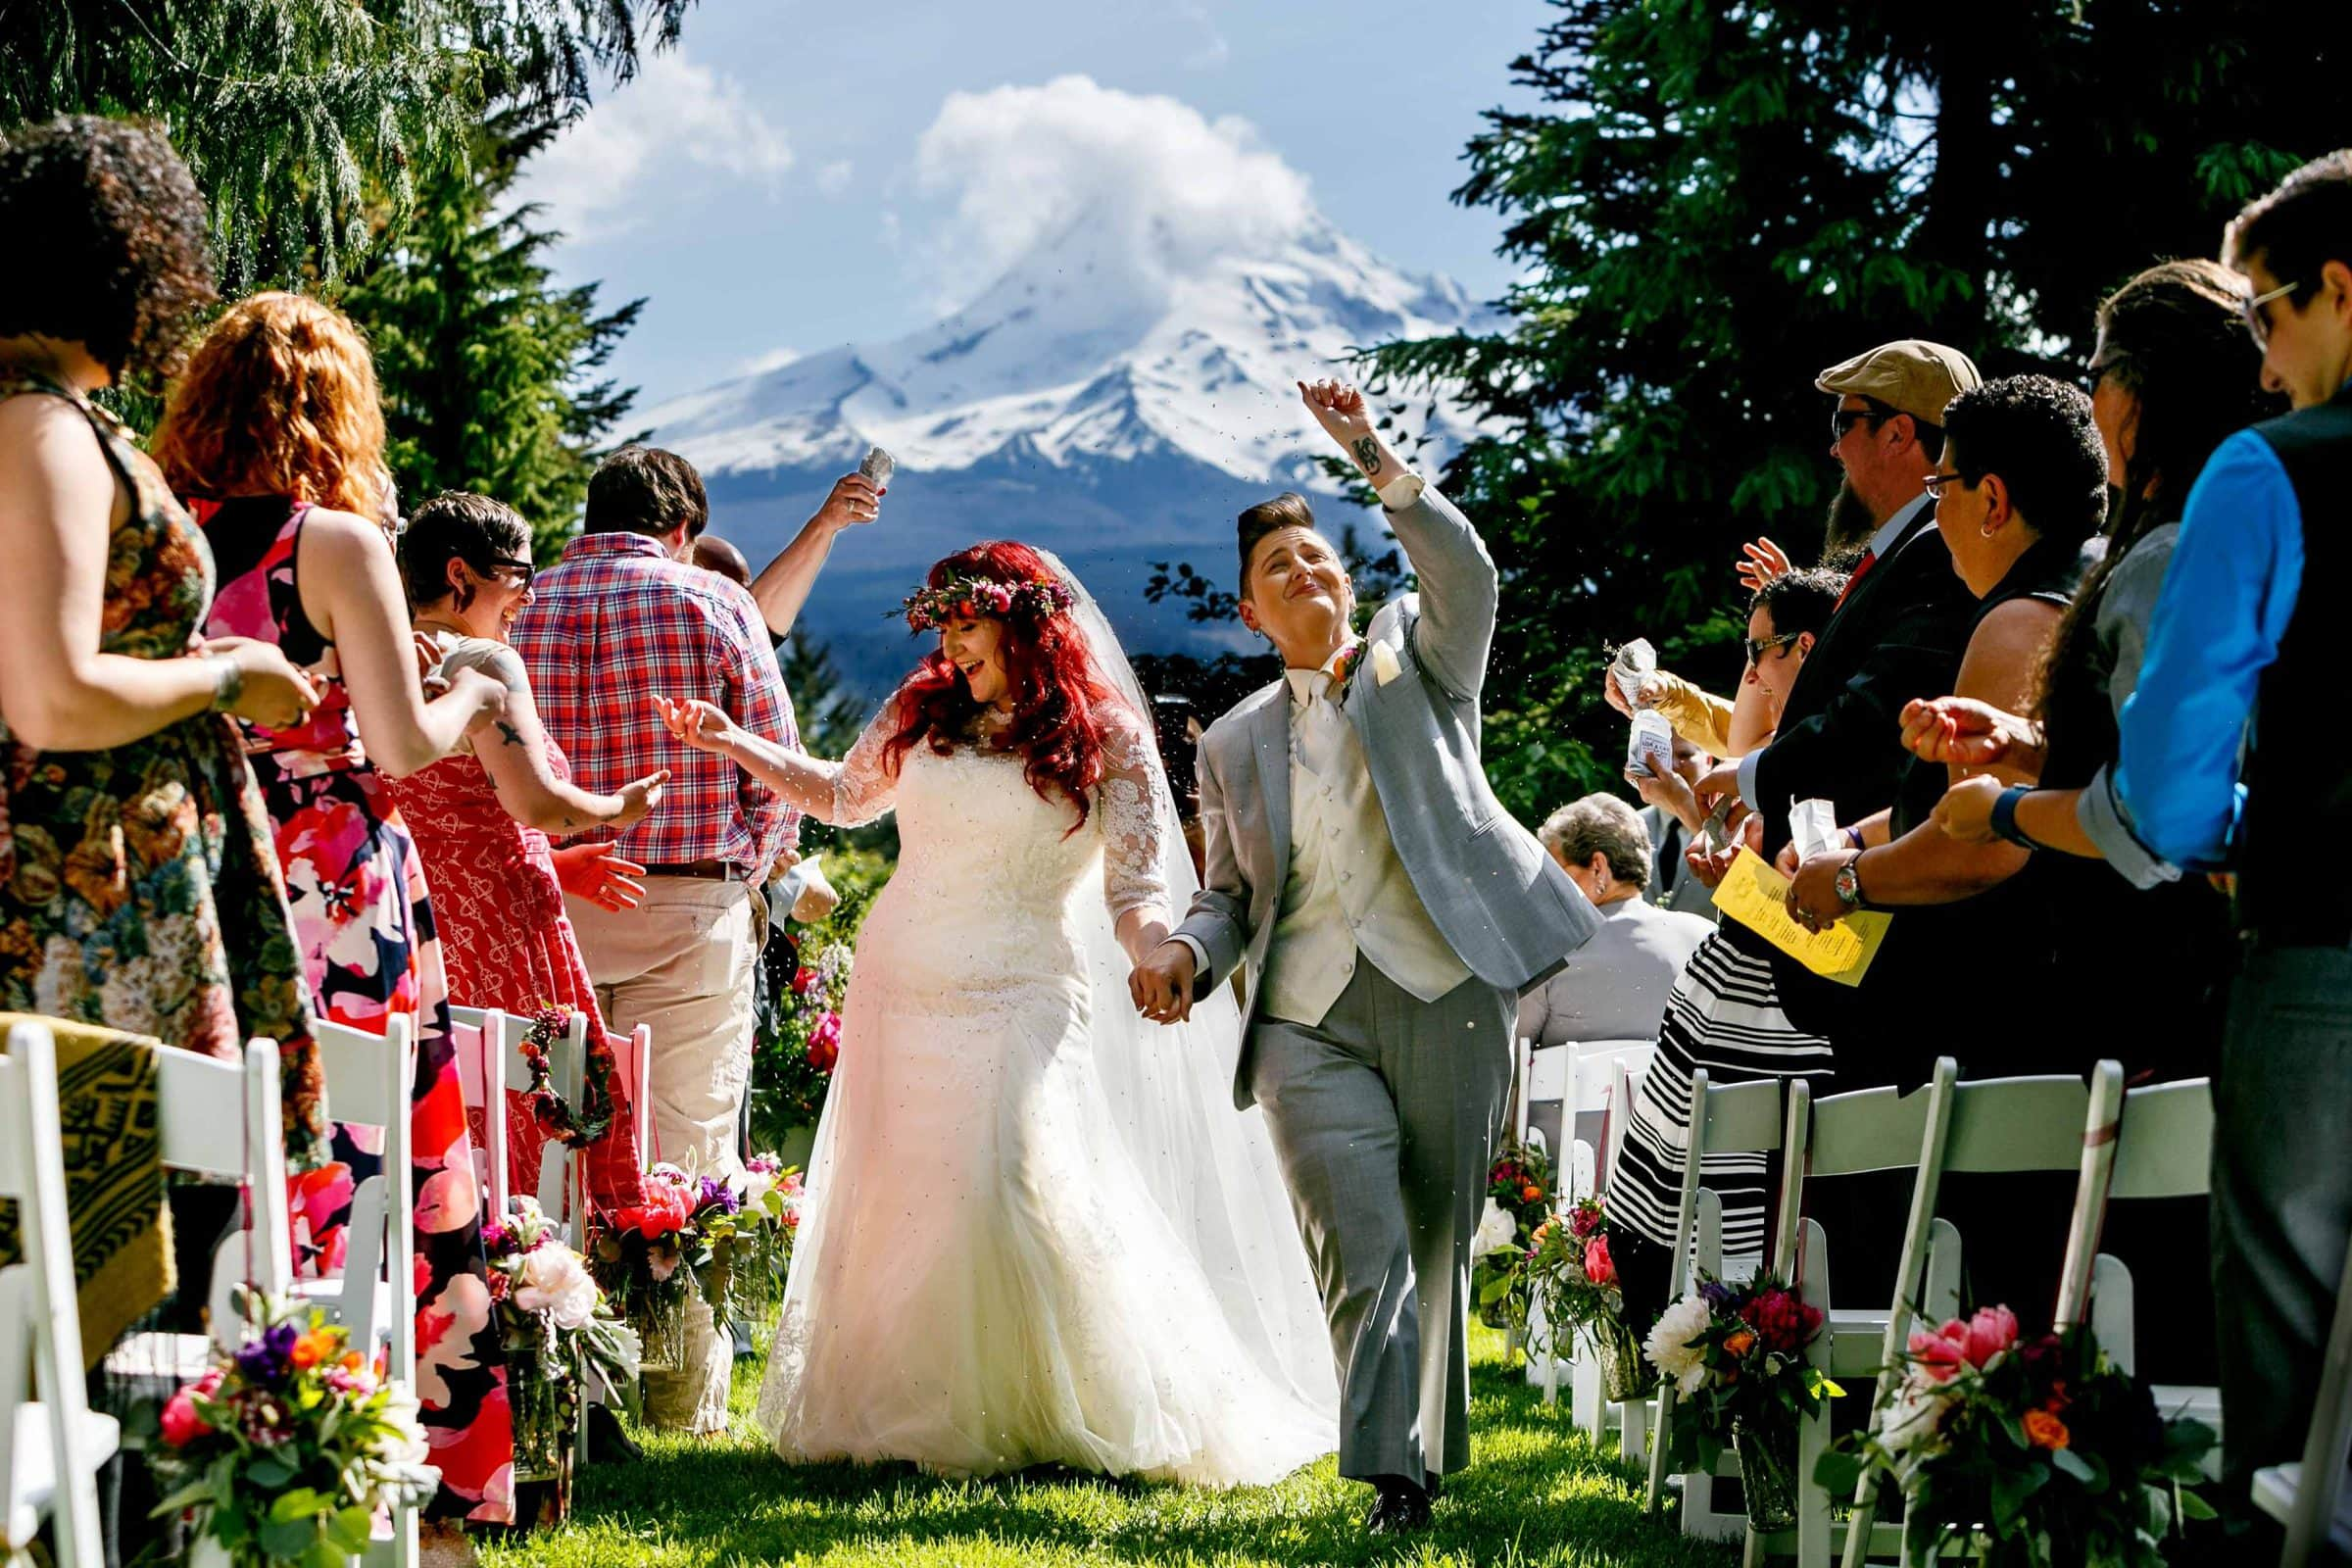 A spectacular award winning wedding photo of a bride and a bride enjoying their exit during their Mt Hood Organic Farms wedding ceremony